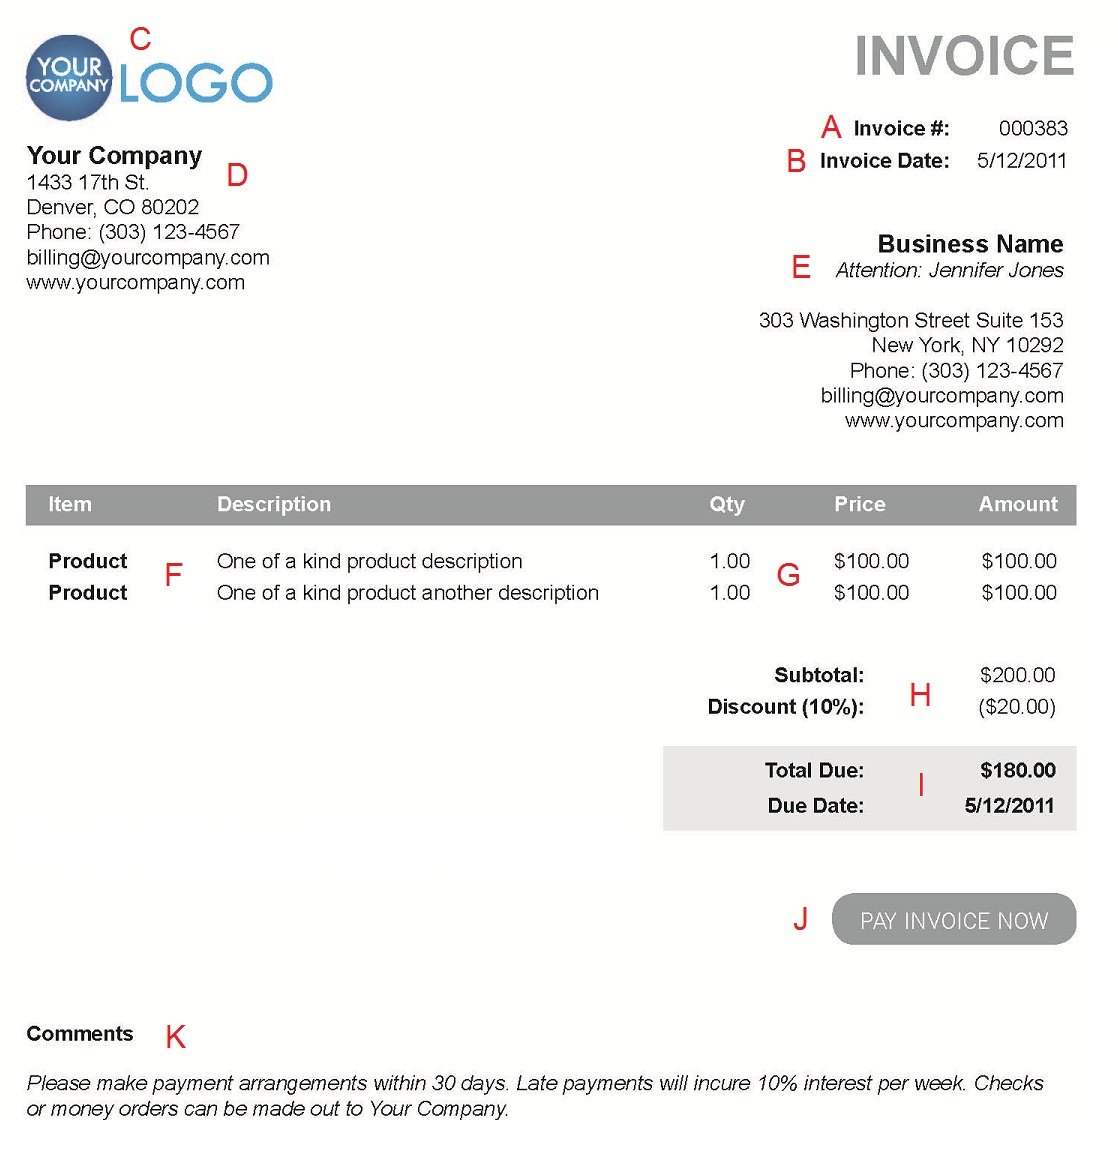 Aaaaeroincus  Prepossessing The  Different Sections Of An Electronic Payment Invoice With Handsome A  With Beautiful  Mazda  Invoice Also Credit Invoice Definition In Addition Sale Invoices And Invoice App Ipad As Well As Invoice Books Online Additionally Ups International Commercial Invoice Form From Paysimplecom With Aaaaeroincus  Handsome The  Different Sections Of An Electronic Payment Invoice With Beautiful A  And Prepossessing  Mazda  Invoice Also Credit Invoice Definition In Addition Sale Invoices From Paysimplecom